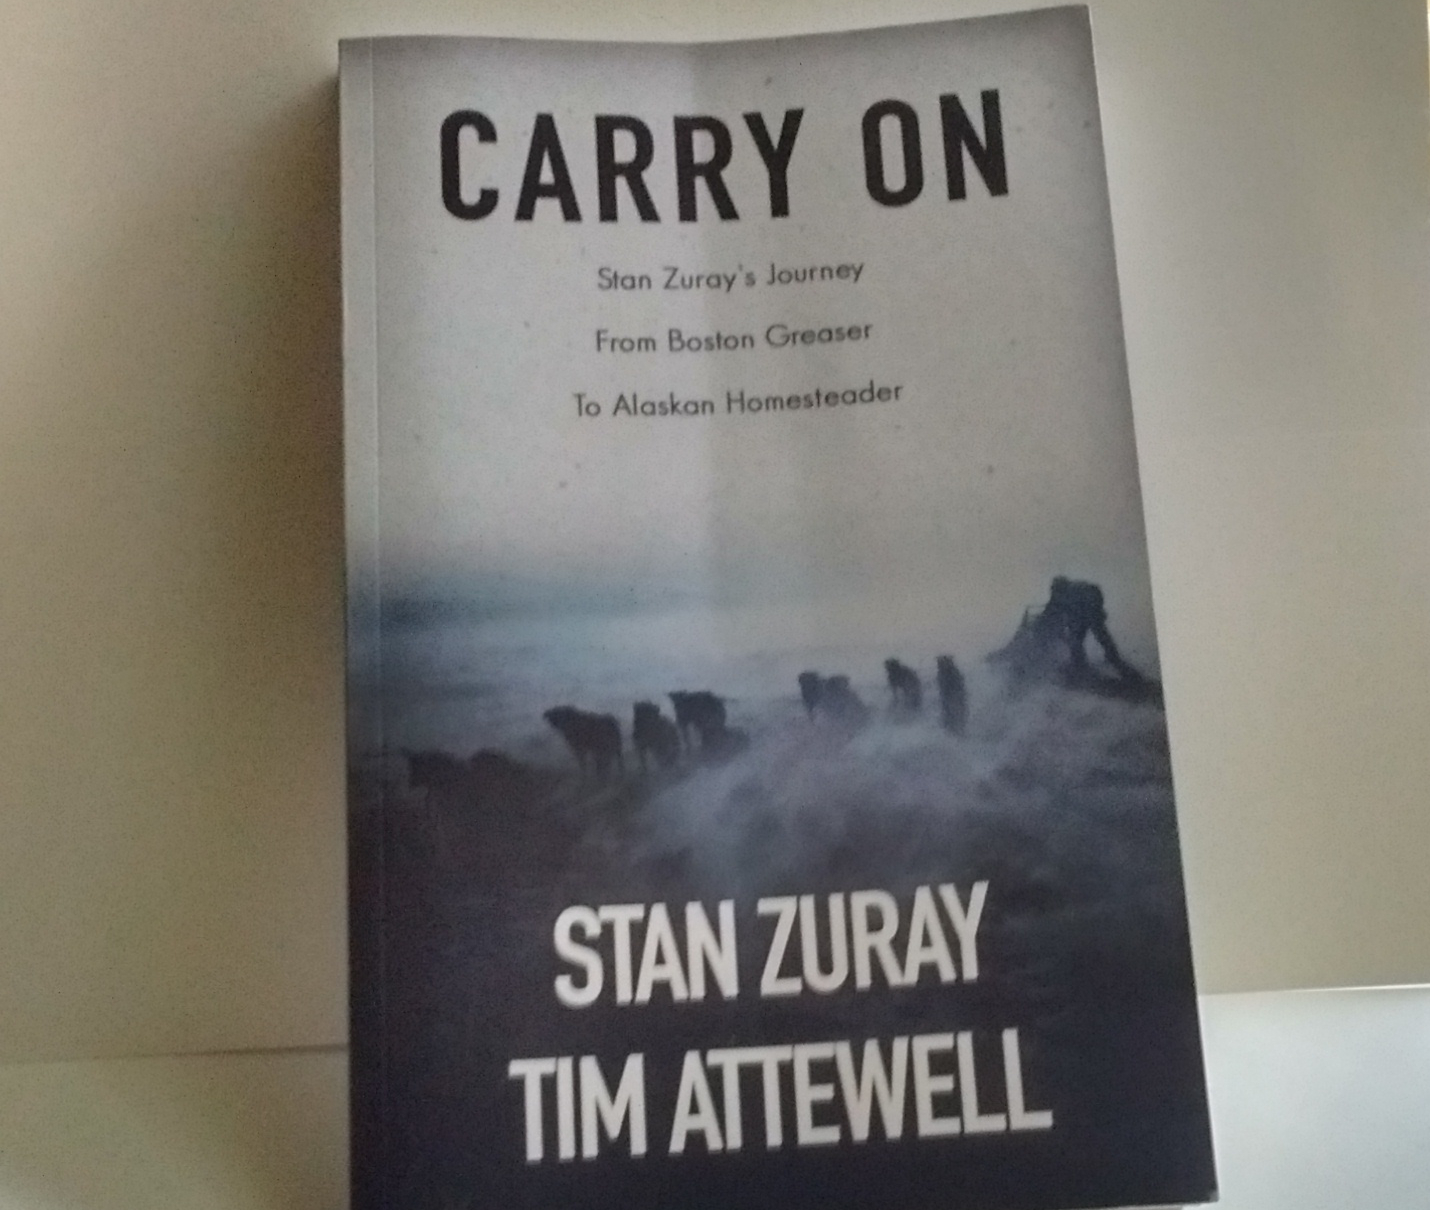 Front Cover of Carry On by Stan Zuray and Tim Attewell